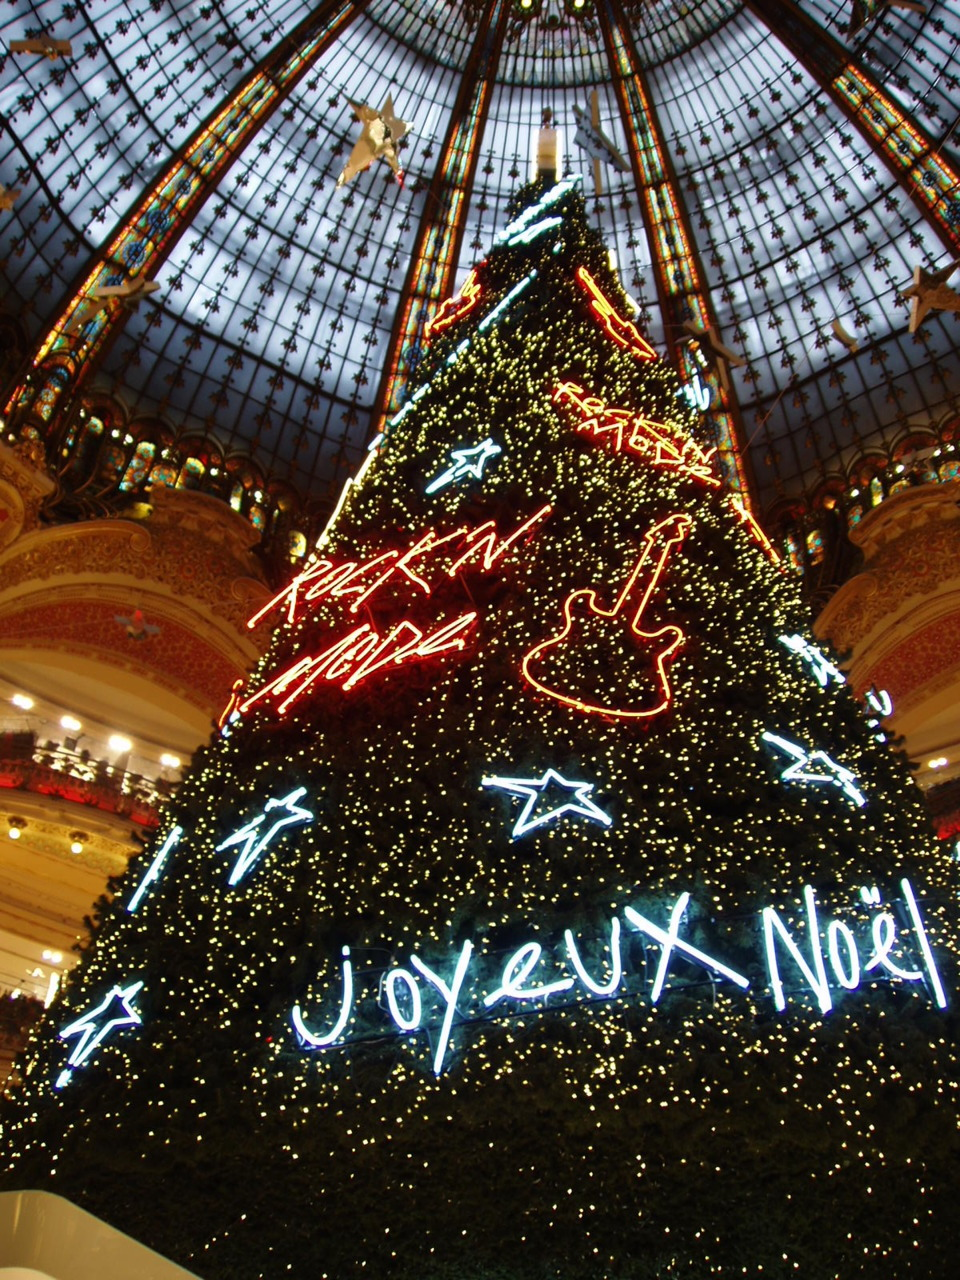 Went on Xmas shopping today. Here is the christmas tree in Galeries Lafayette, Paris